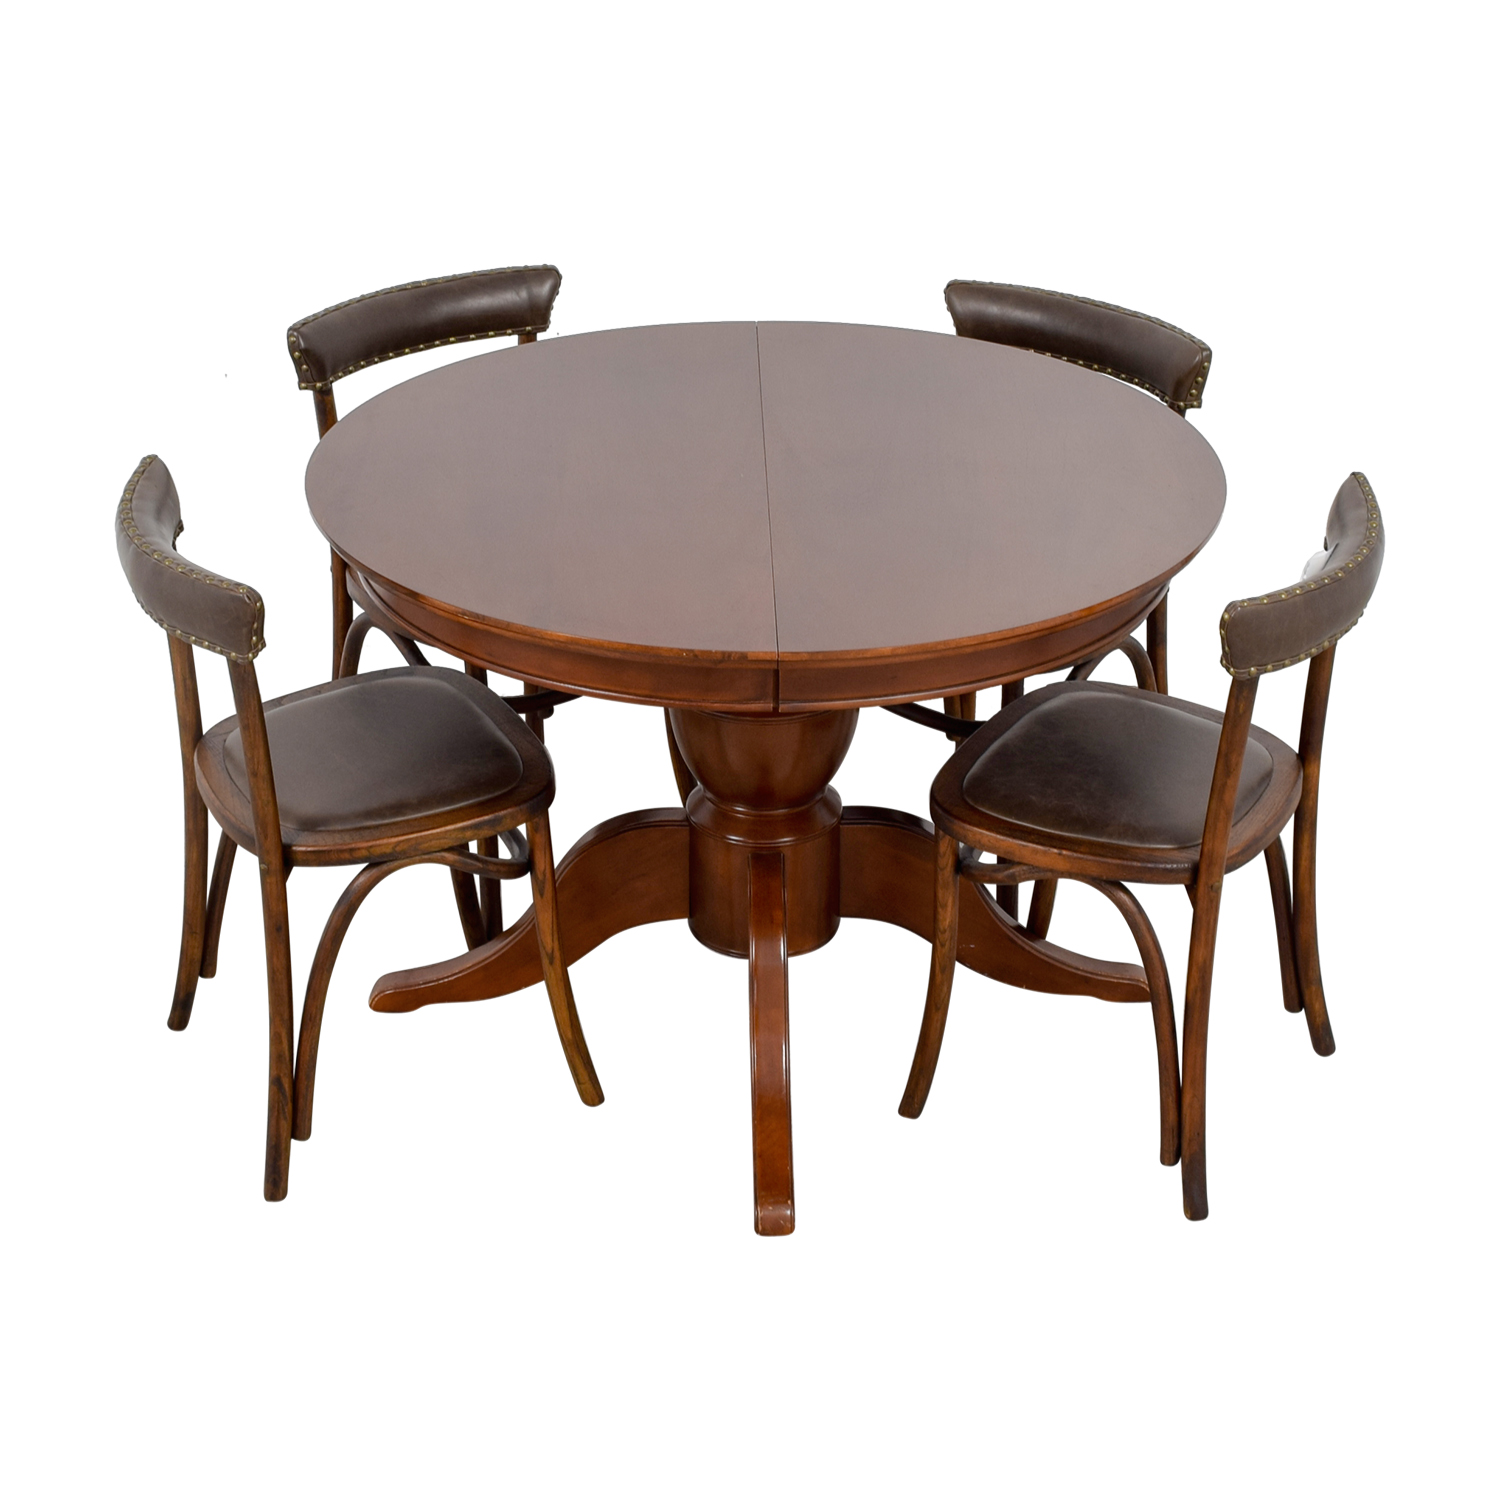 Pottery Barn Pottery Barn Round Spindle Table with Extension Leaf Dining Set used